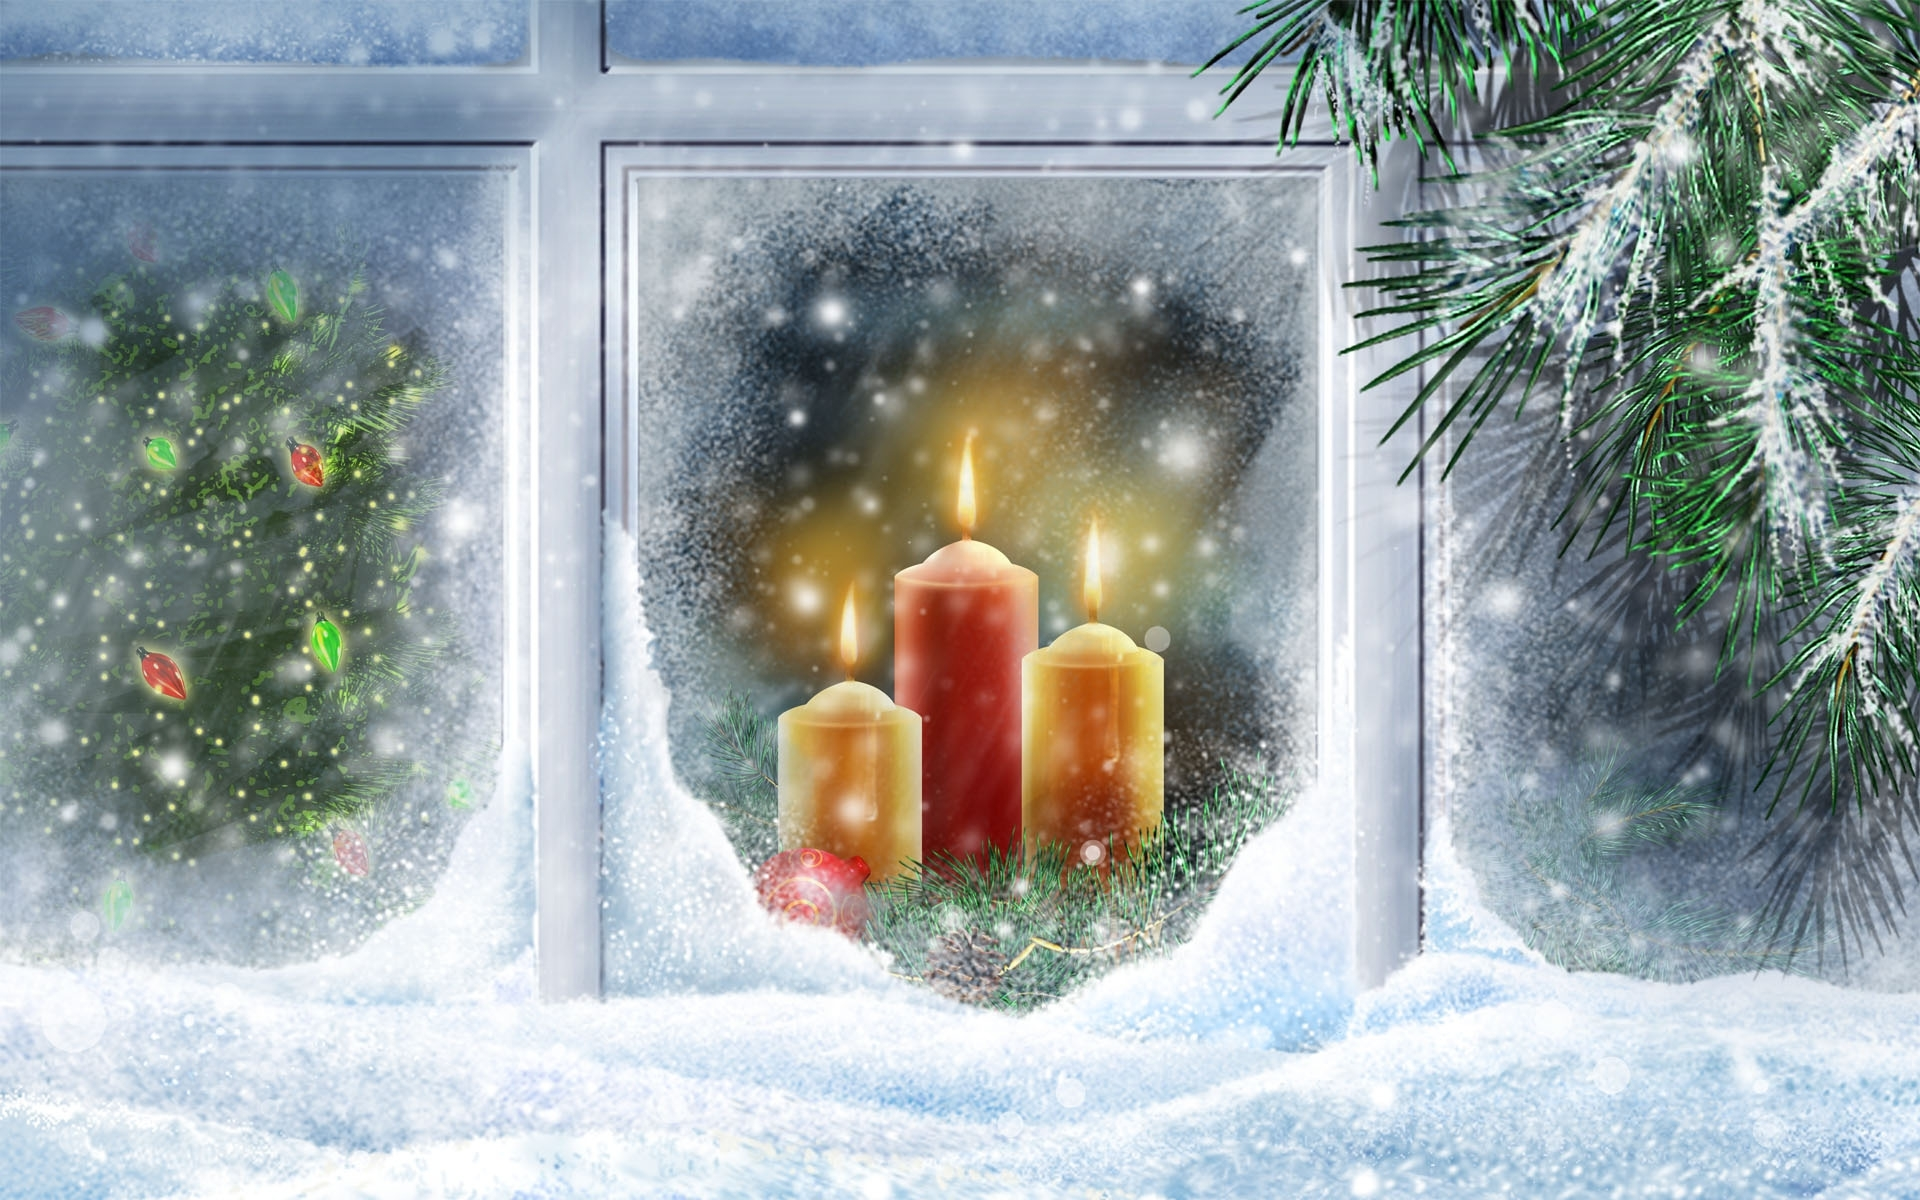 41564 download wallpaper Background, Snow, Candles, Pictures screensavers and pictures for free